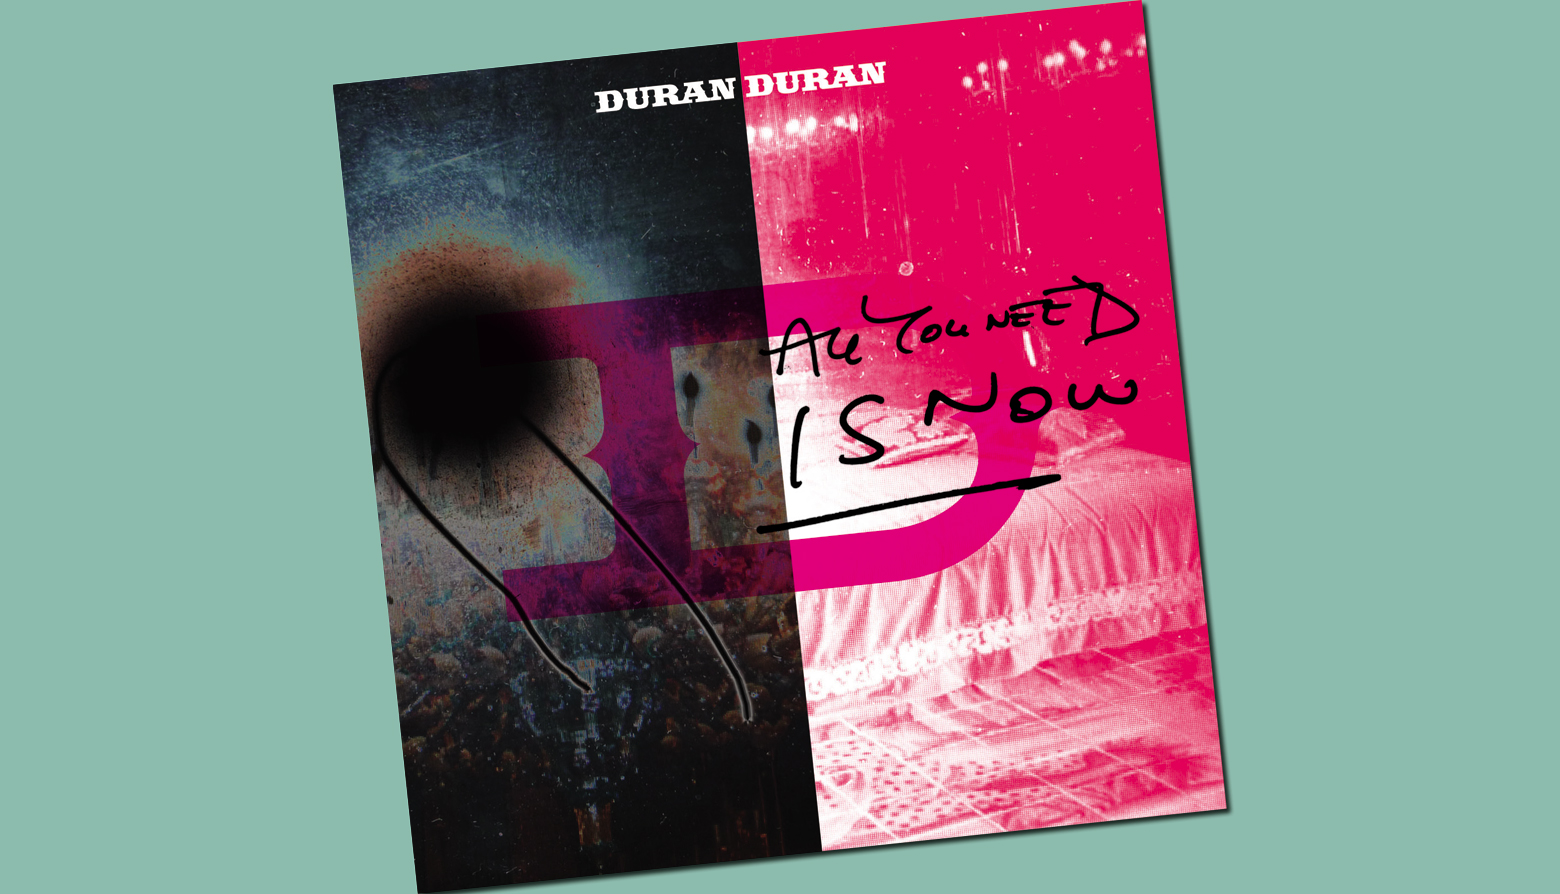 Duran-Duran-All-You-Need-Is-Now-album-hi